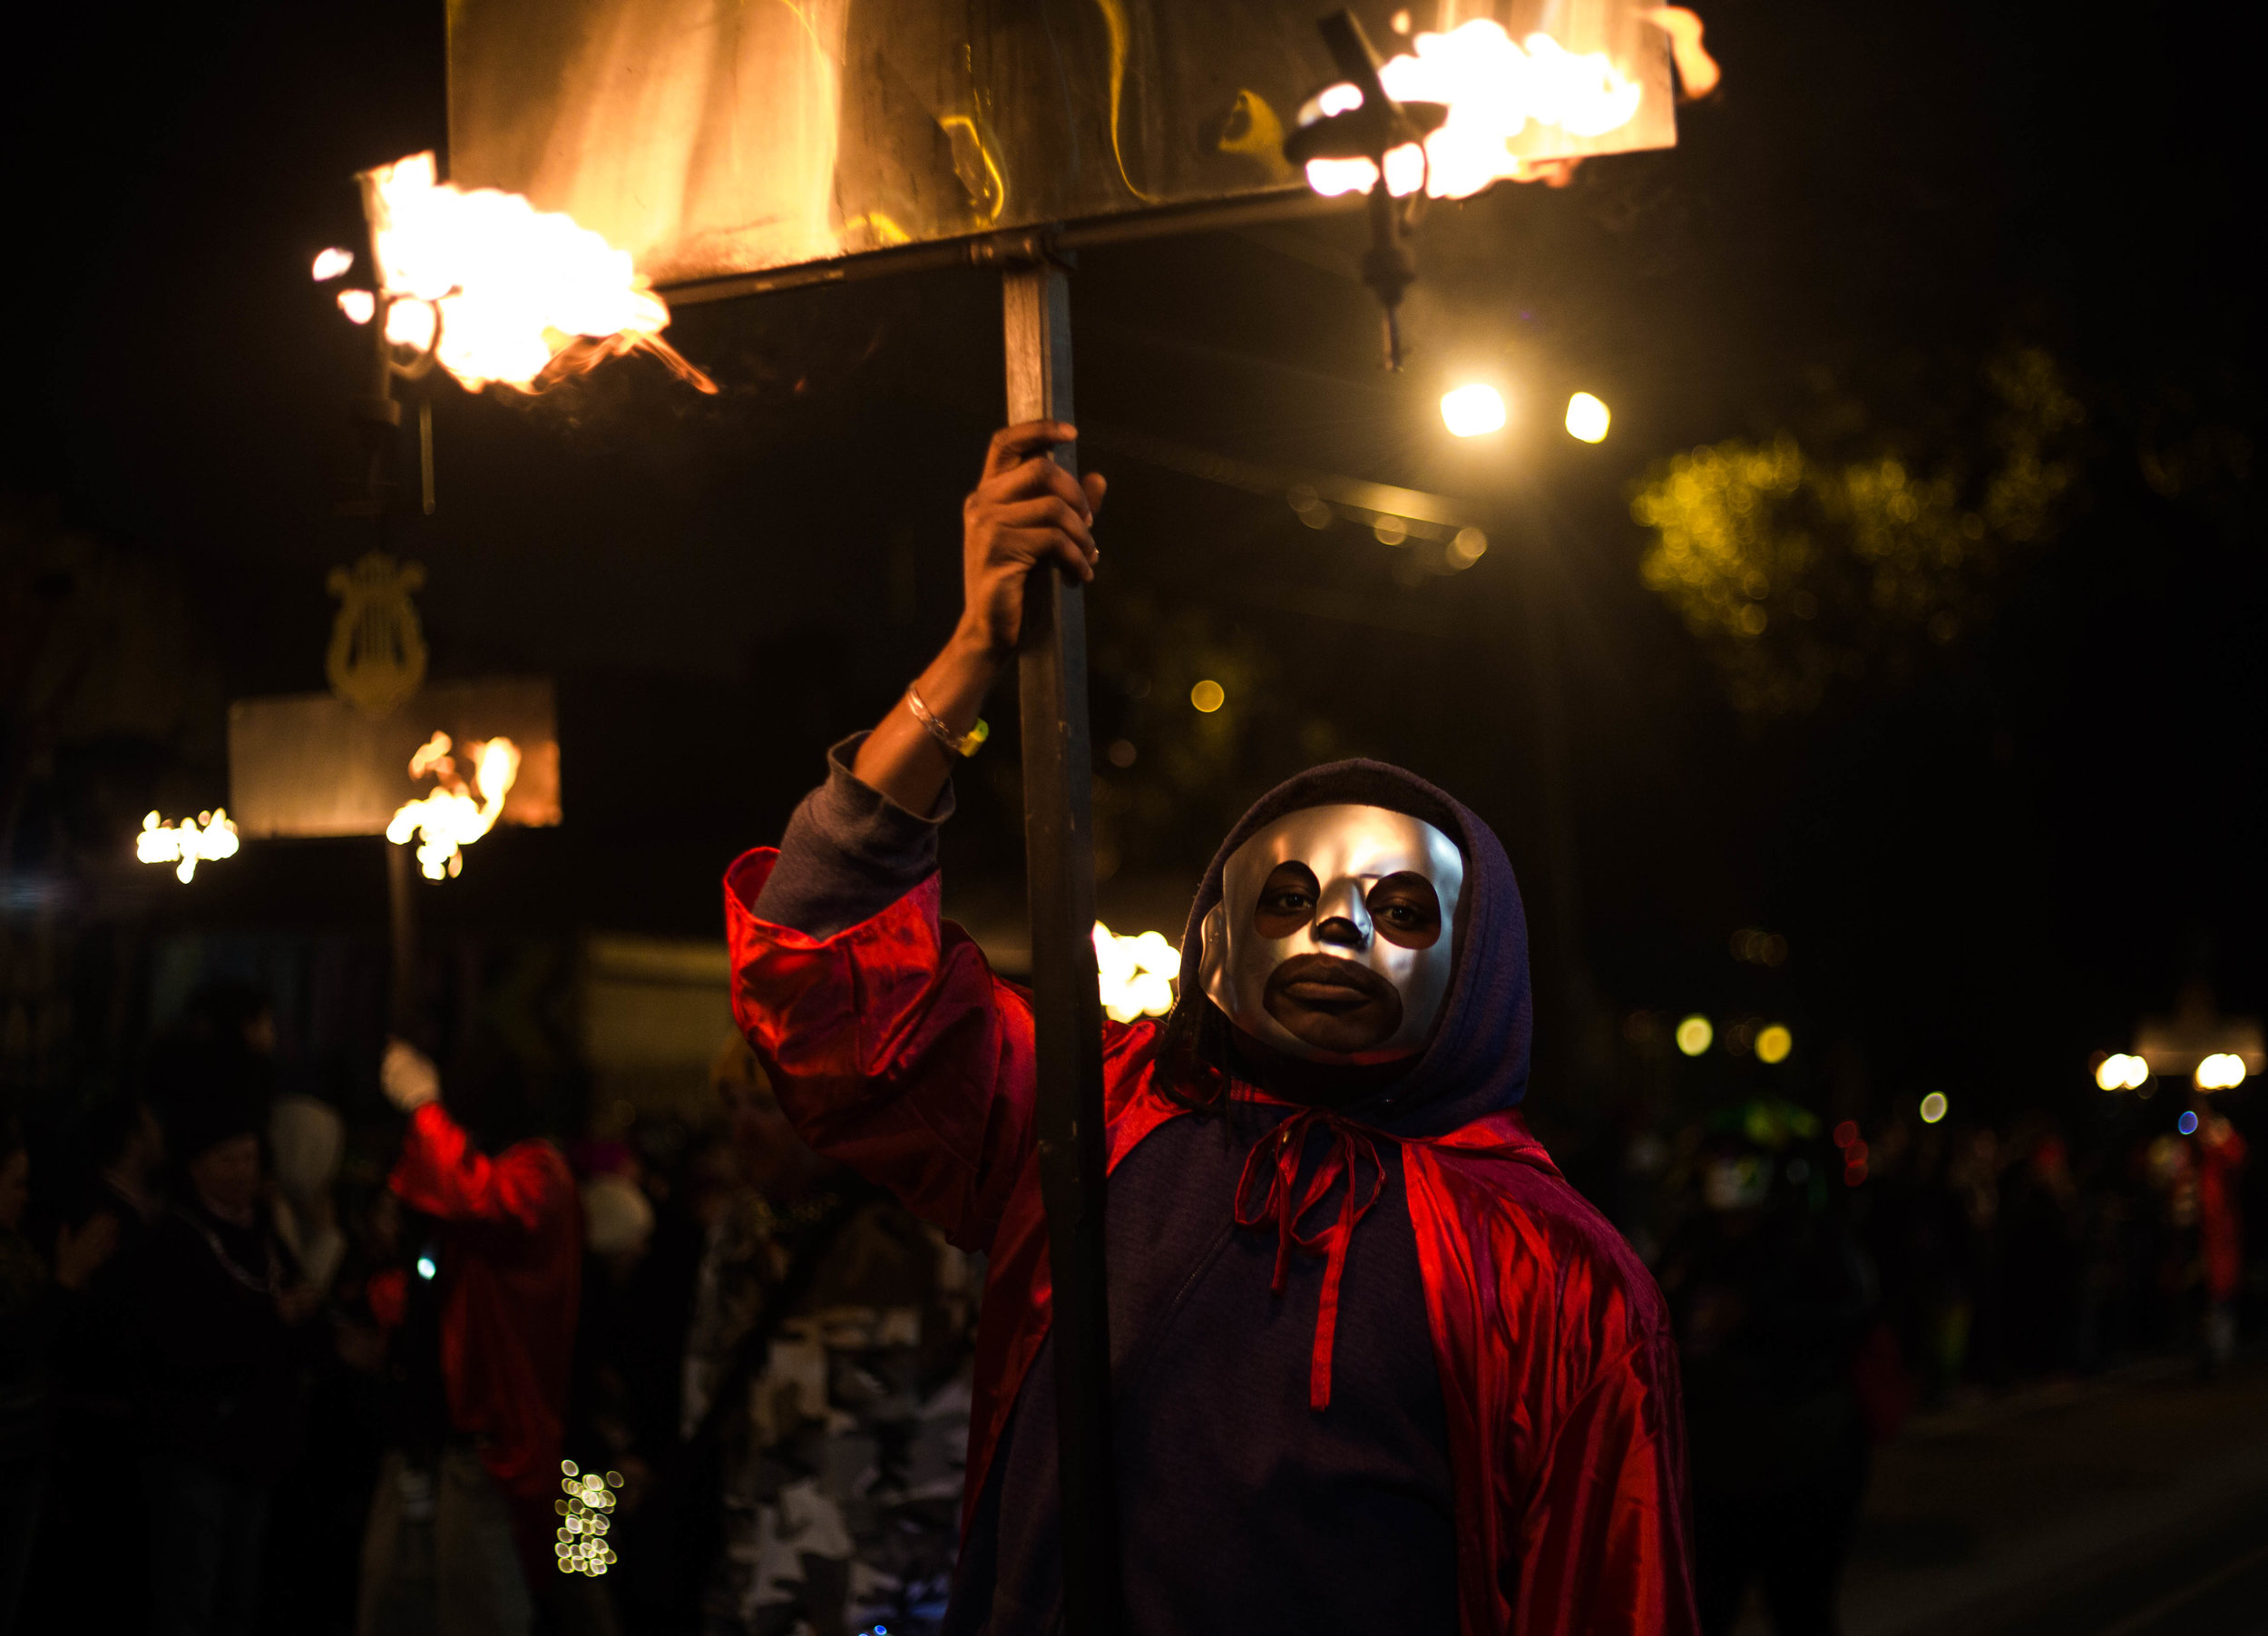 The Flambeaux, the original Mardi Gras lights, were needed for revelers to see the Carnival parades at night. They carried wooden rudimentary torches and lit pine tar rags to light the way.